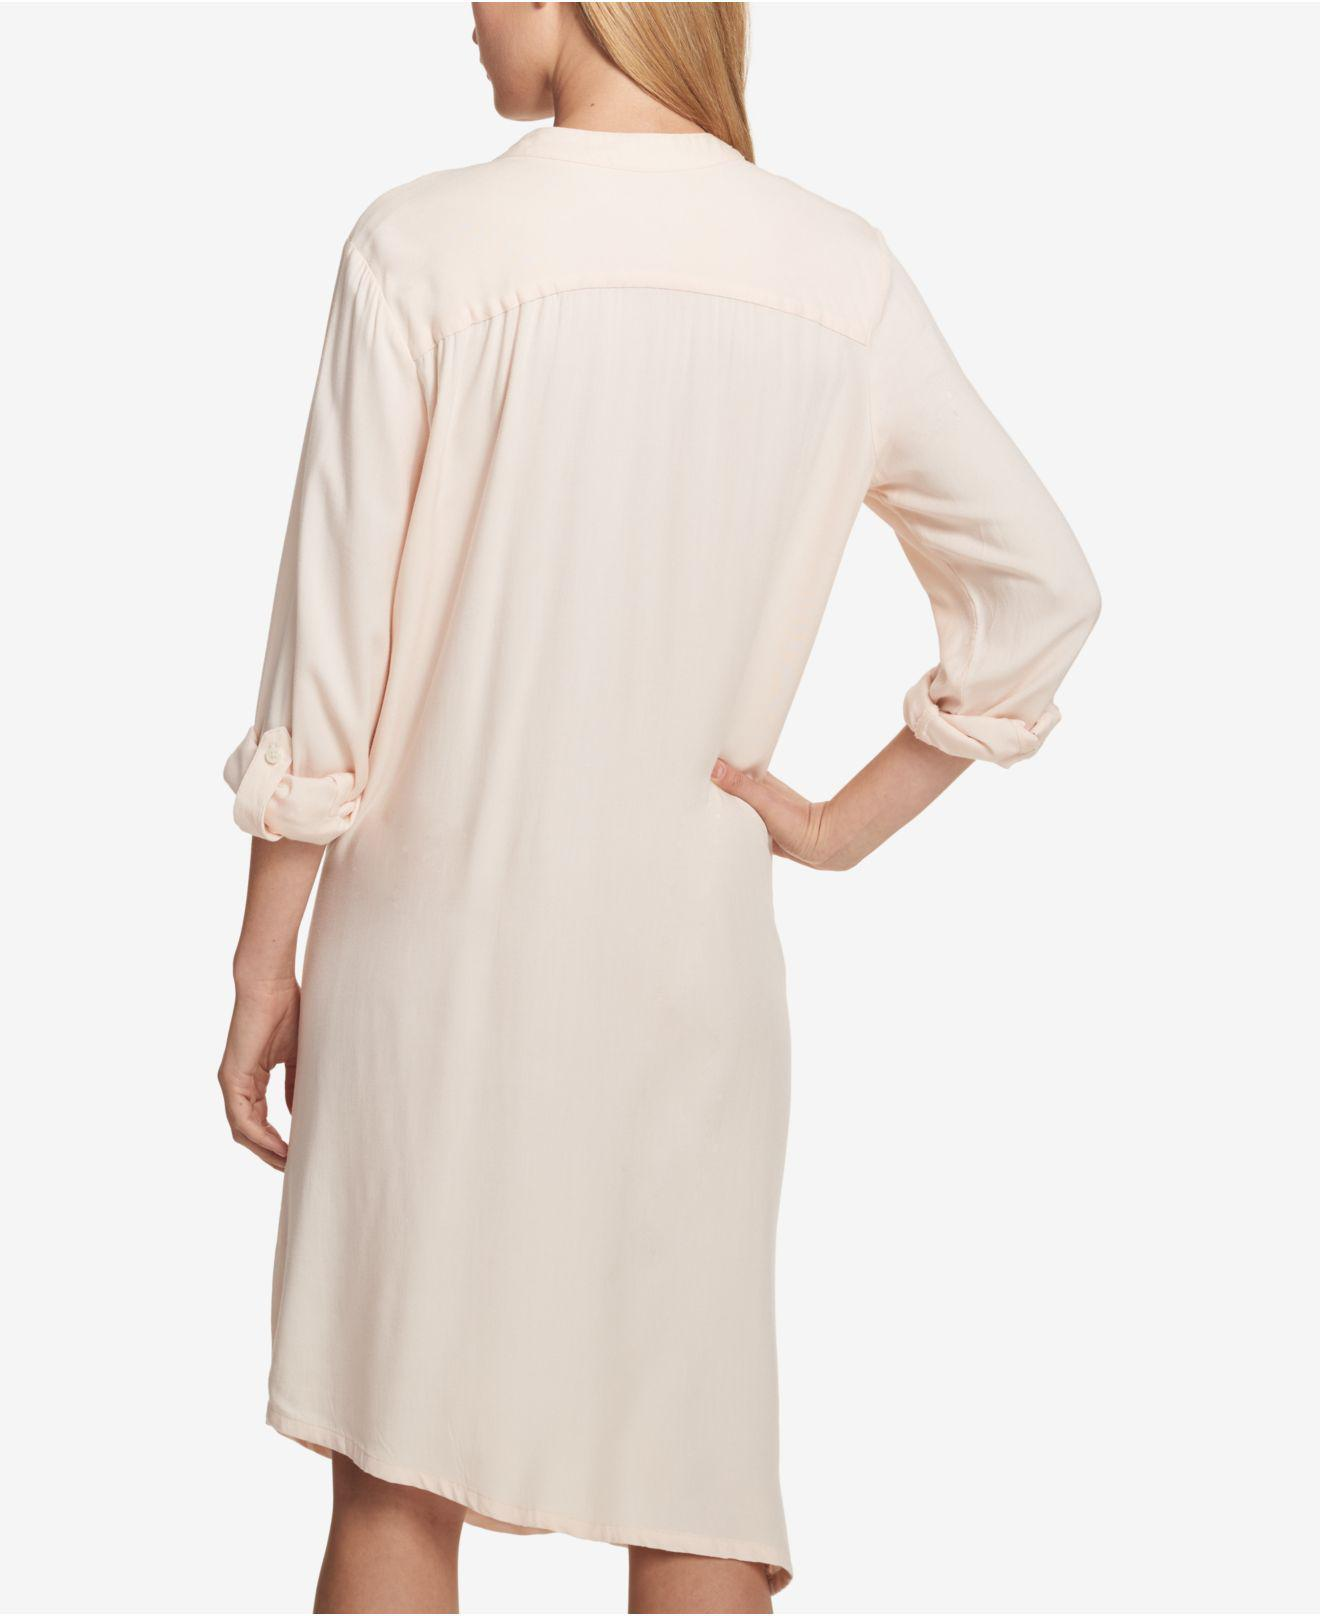 88ea47d575 Lyst - DKNY Side-tie Roll-tab Shirtdress in Natural